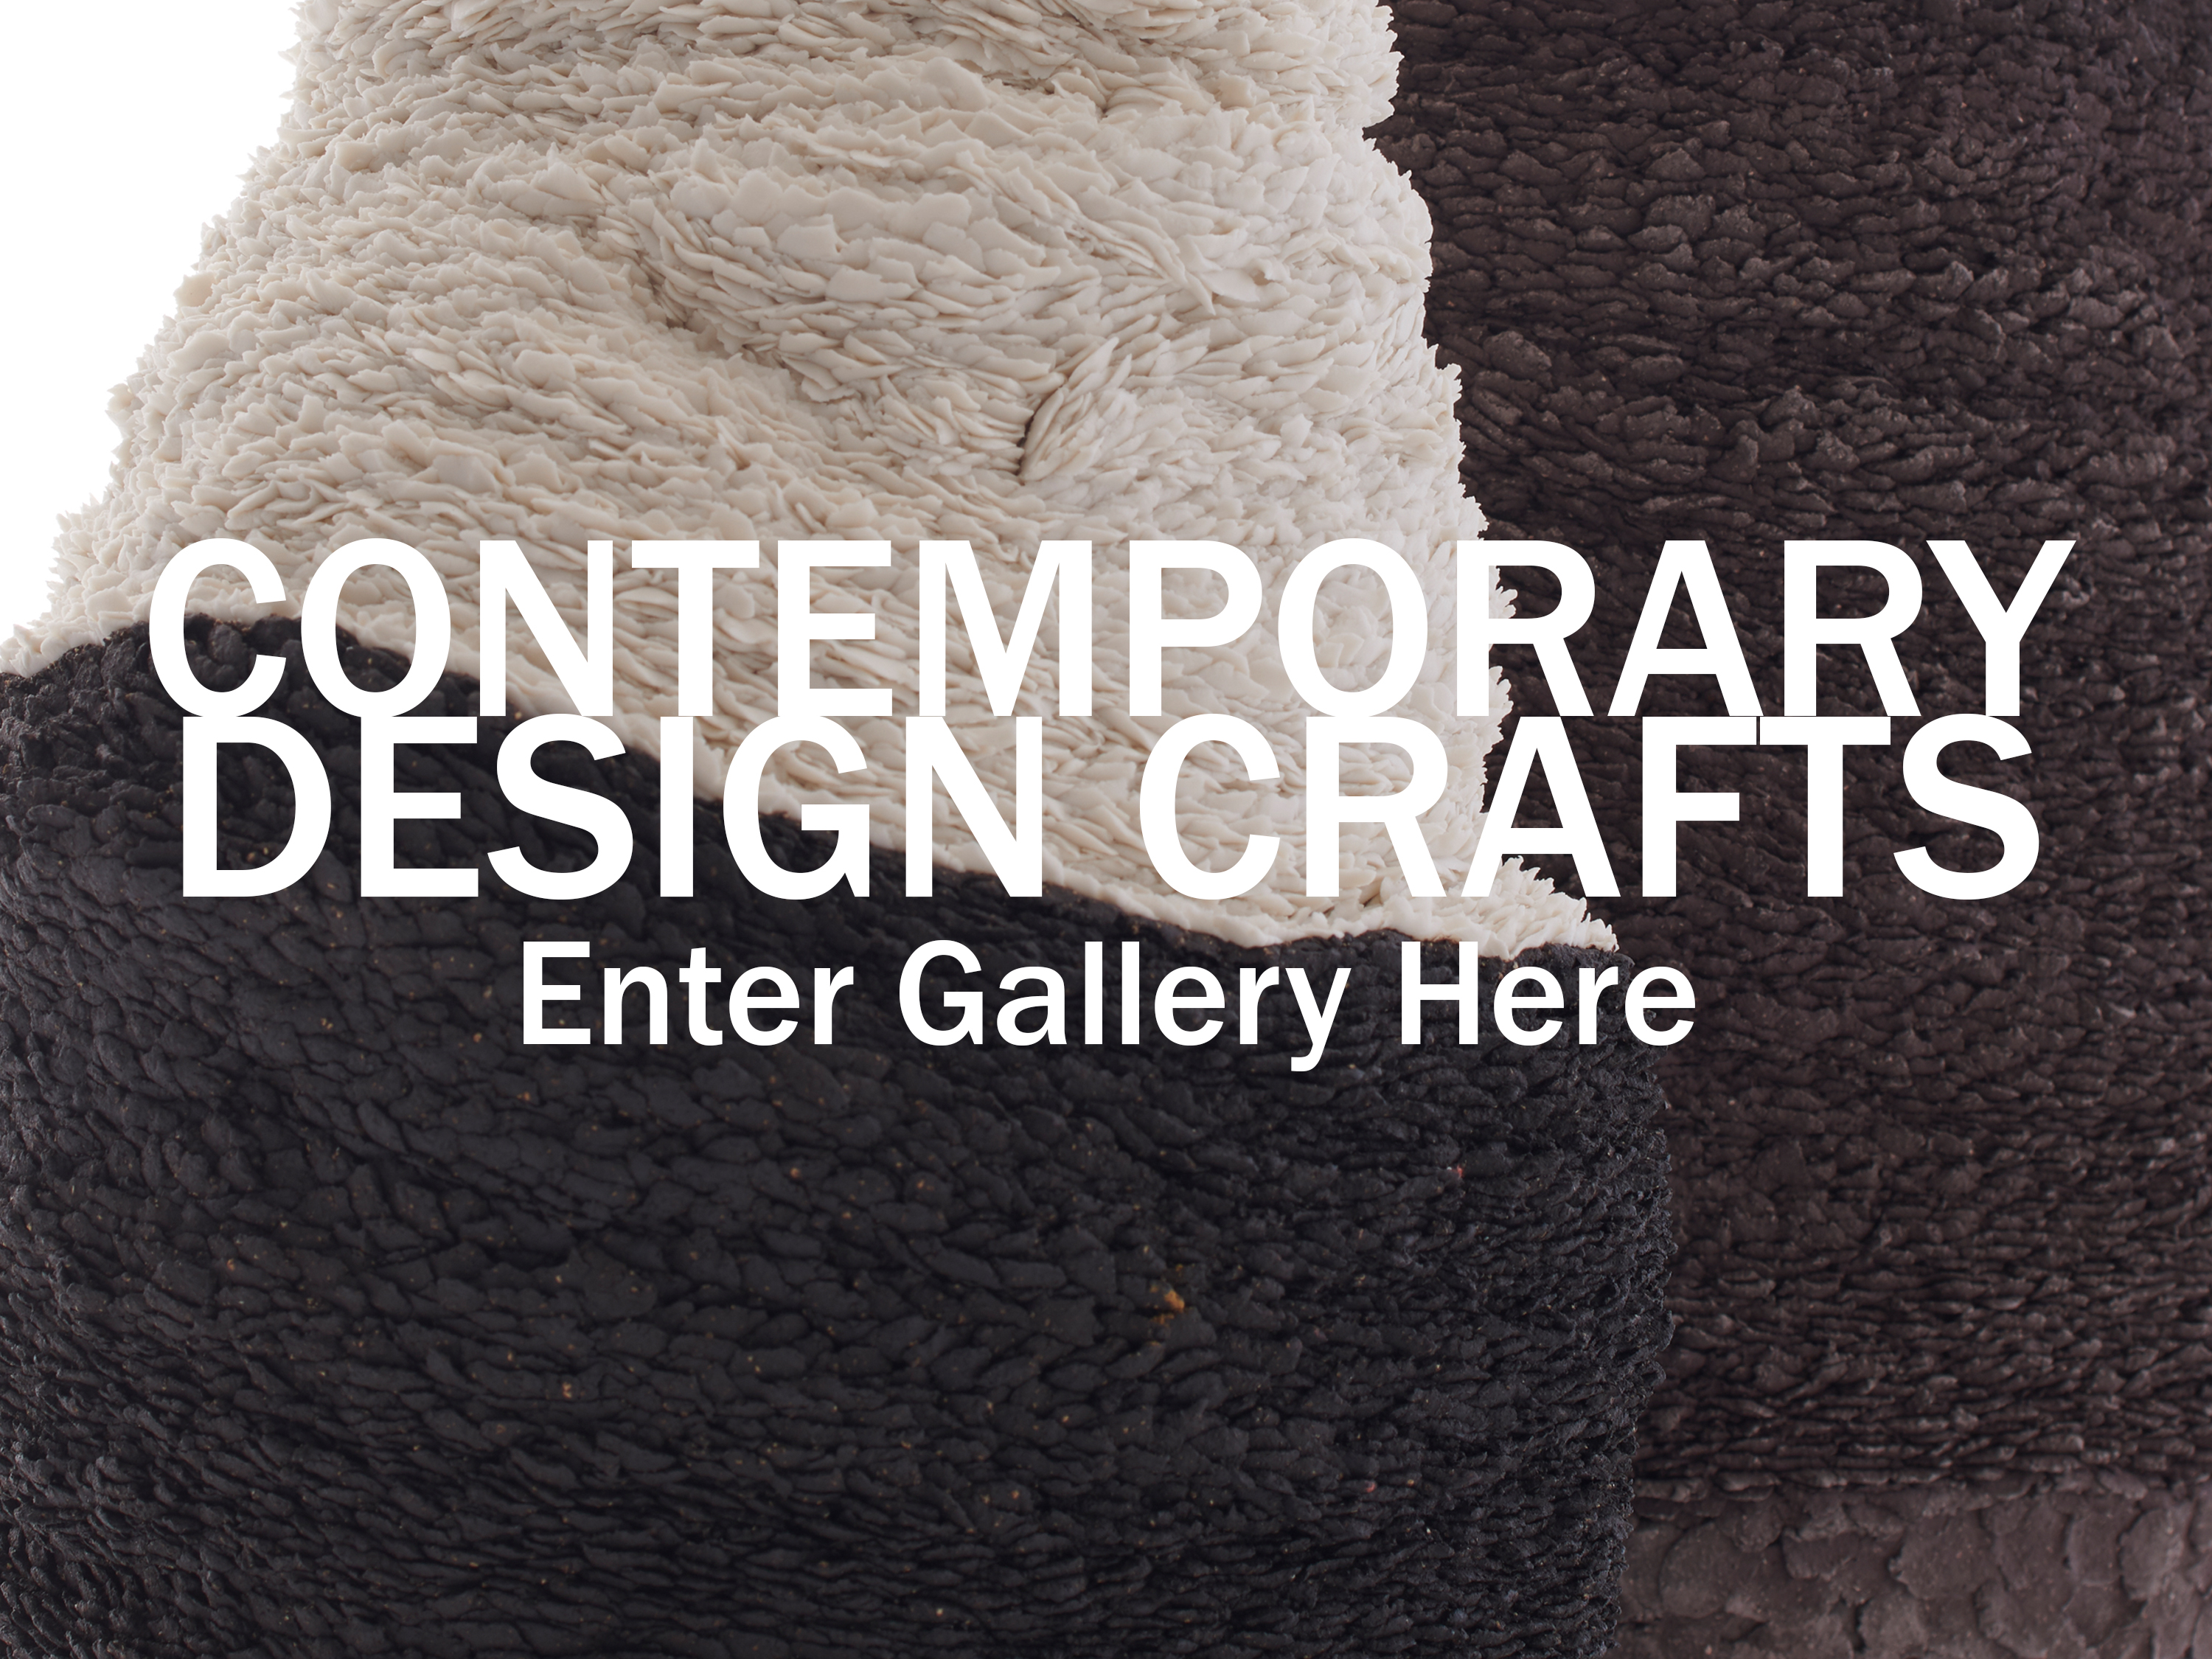 Enter Contemporary Design Crafts Gallery Here